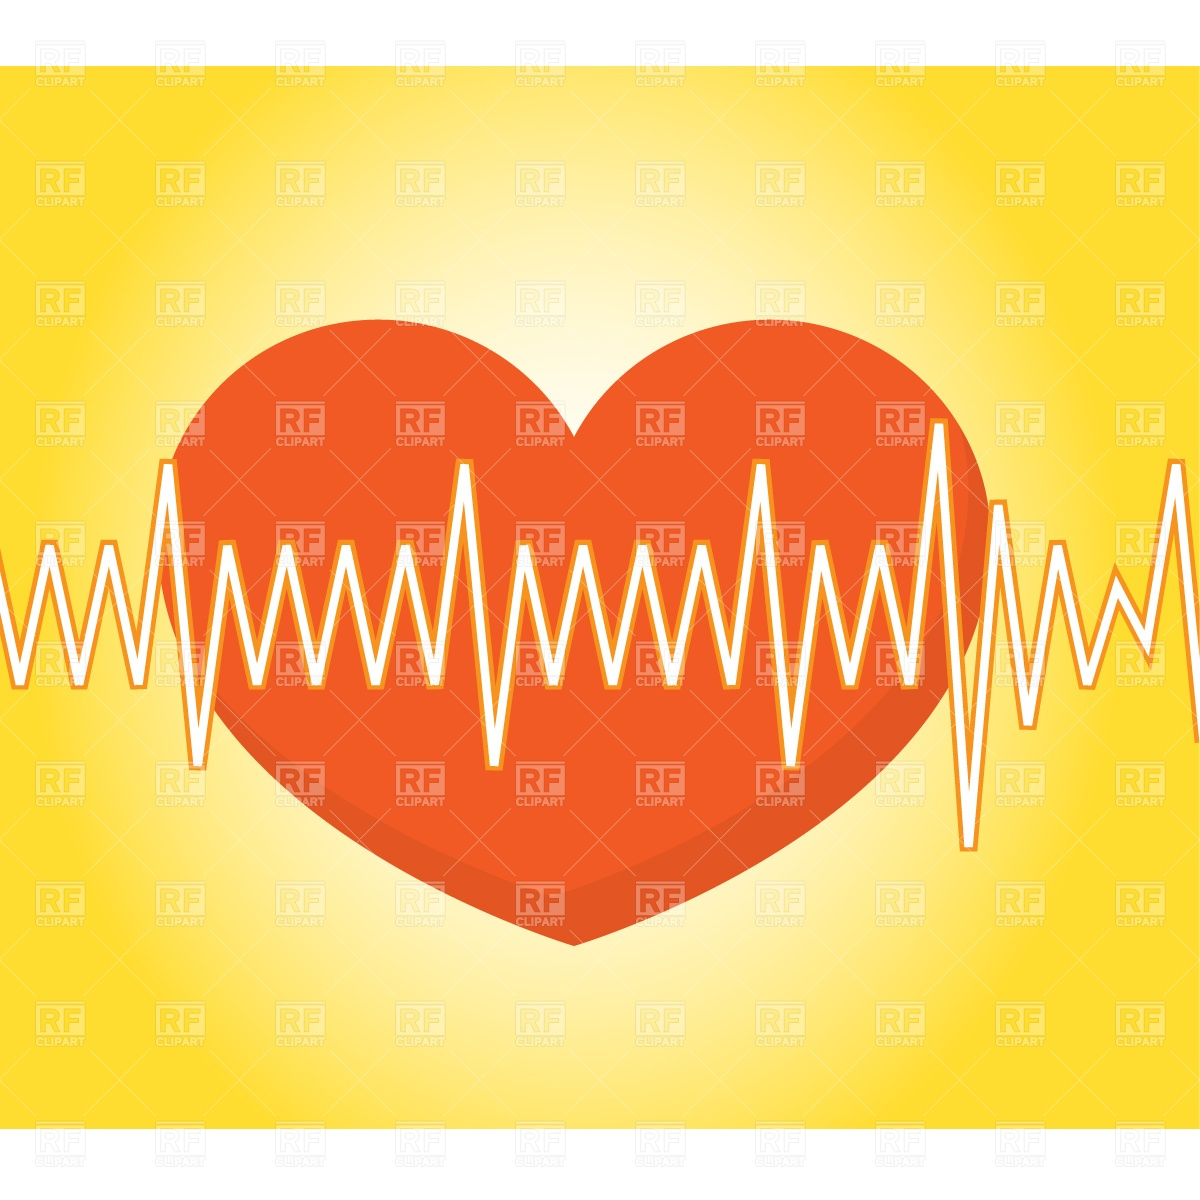 Pulse Trace and heart Vector Image #822.